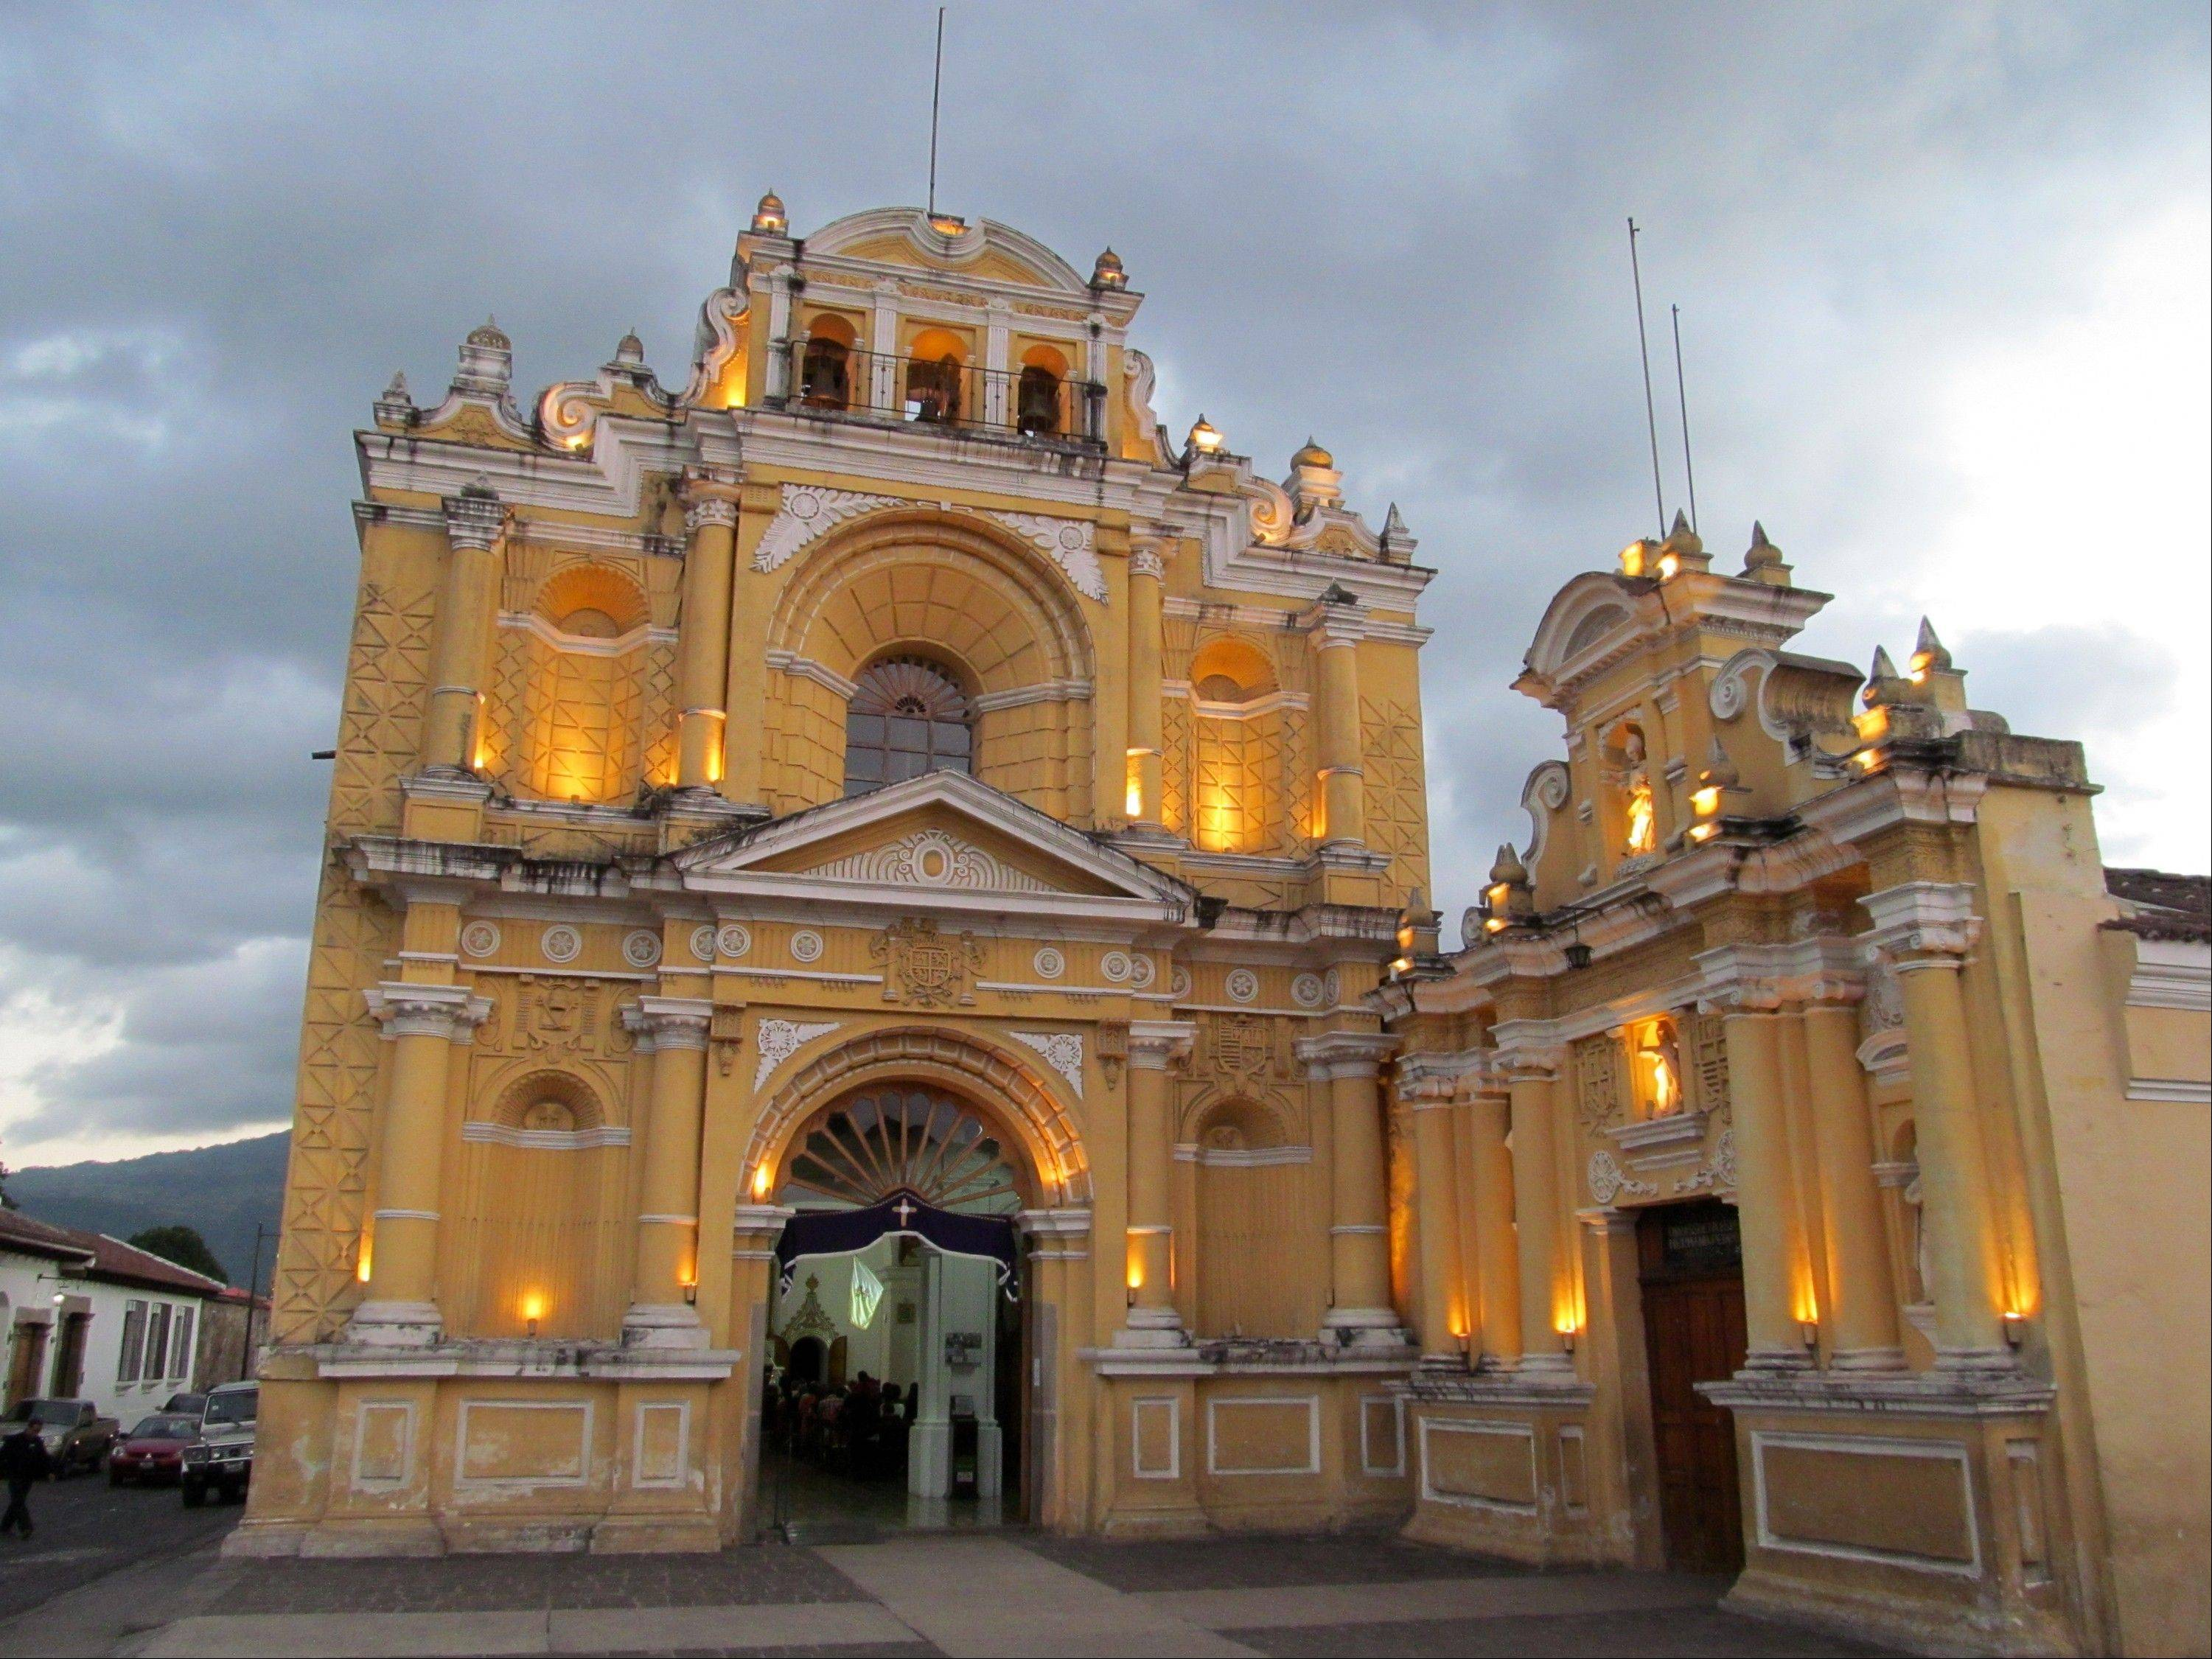 Iglesia de San Pedro, one of the oldest churches in Antigua, Guatemala, is lit up at night. The city boasts one of the best collections of Spanish colonial buildings in the Americas and is a popular destination for tourists.